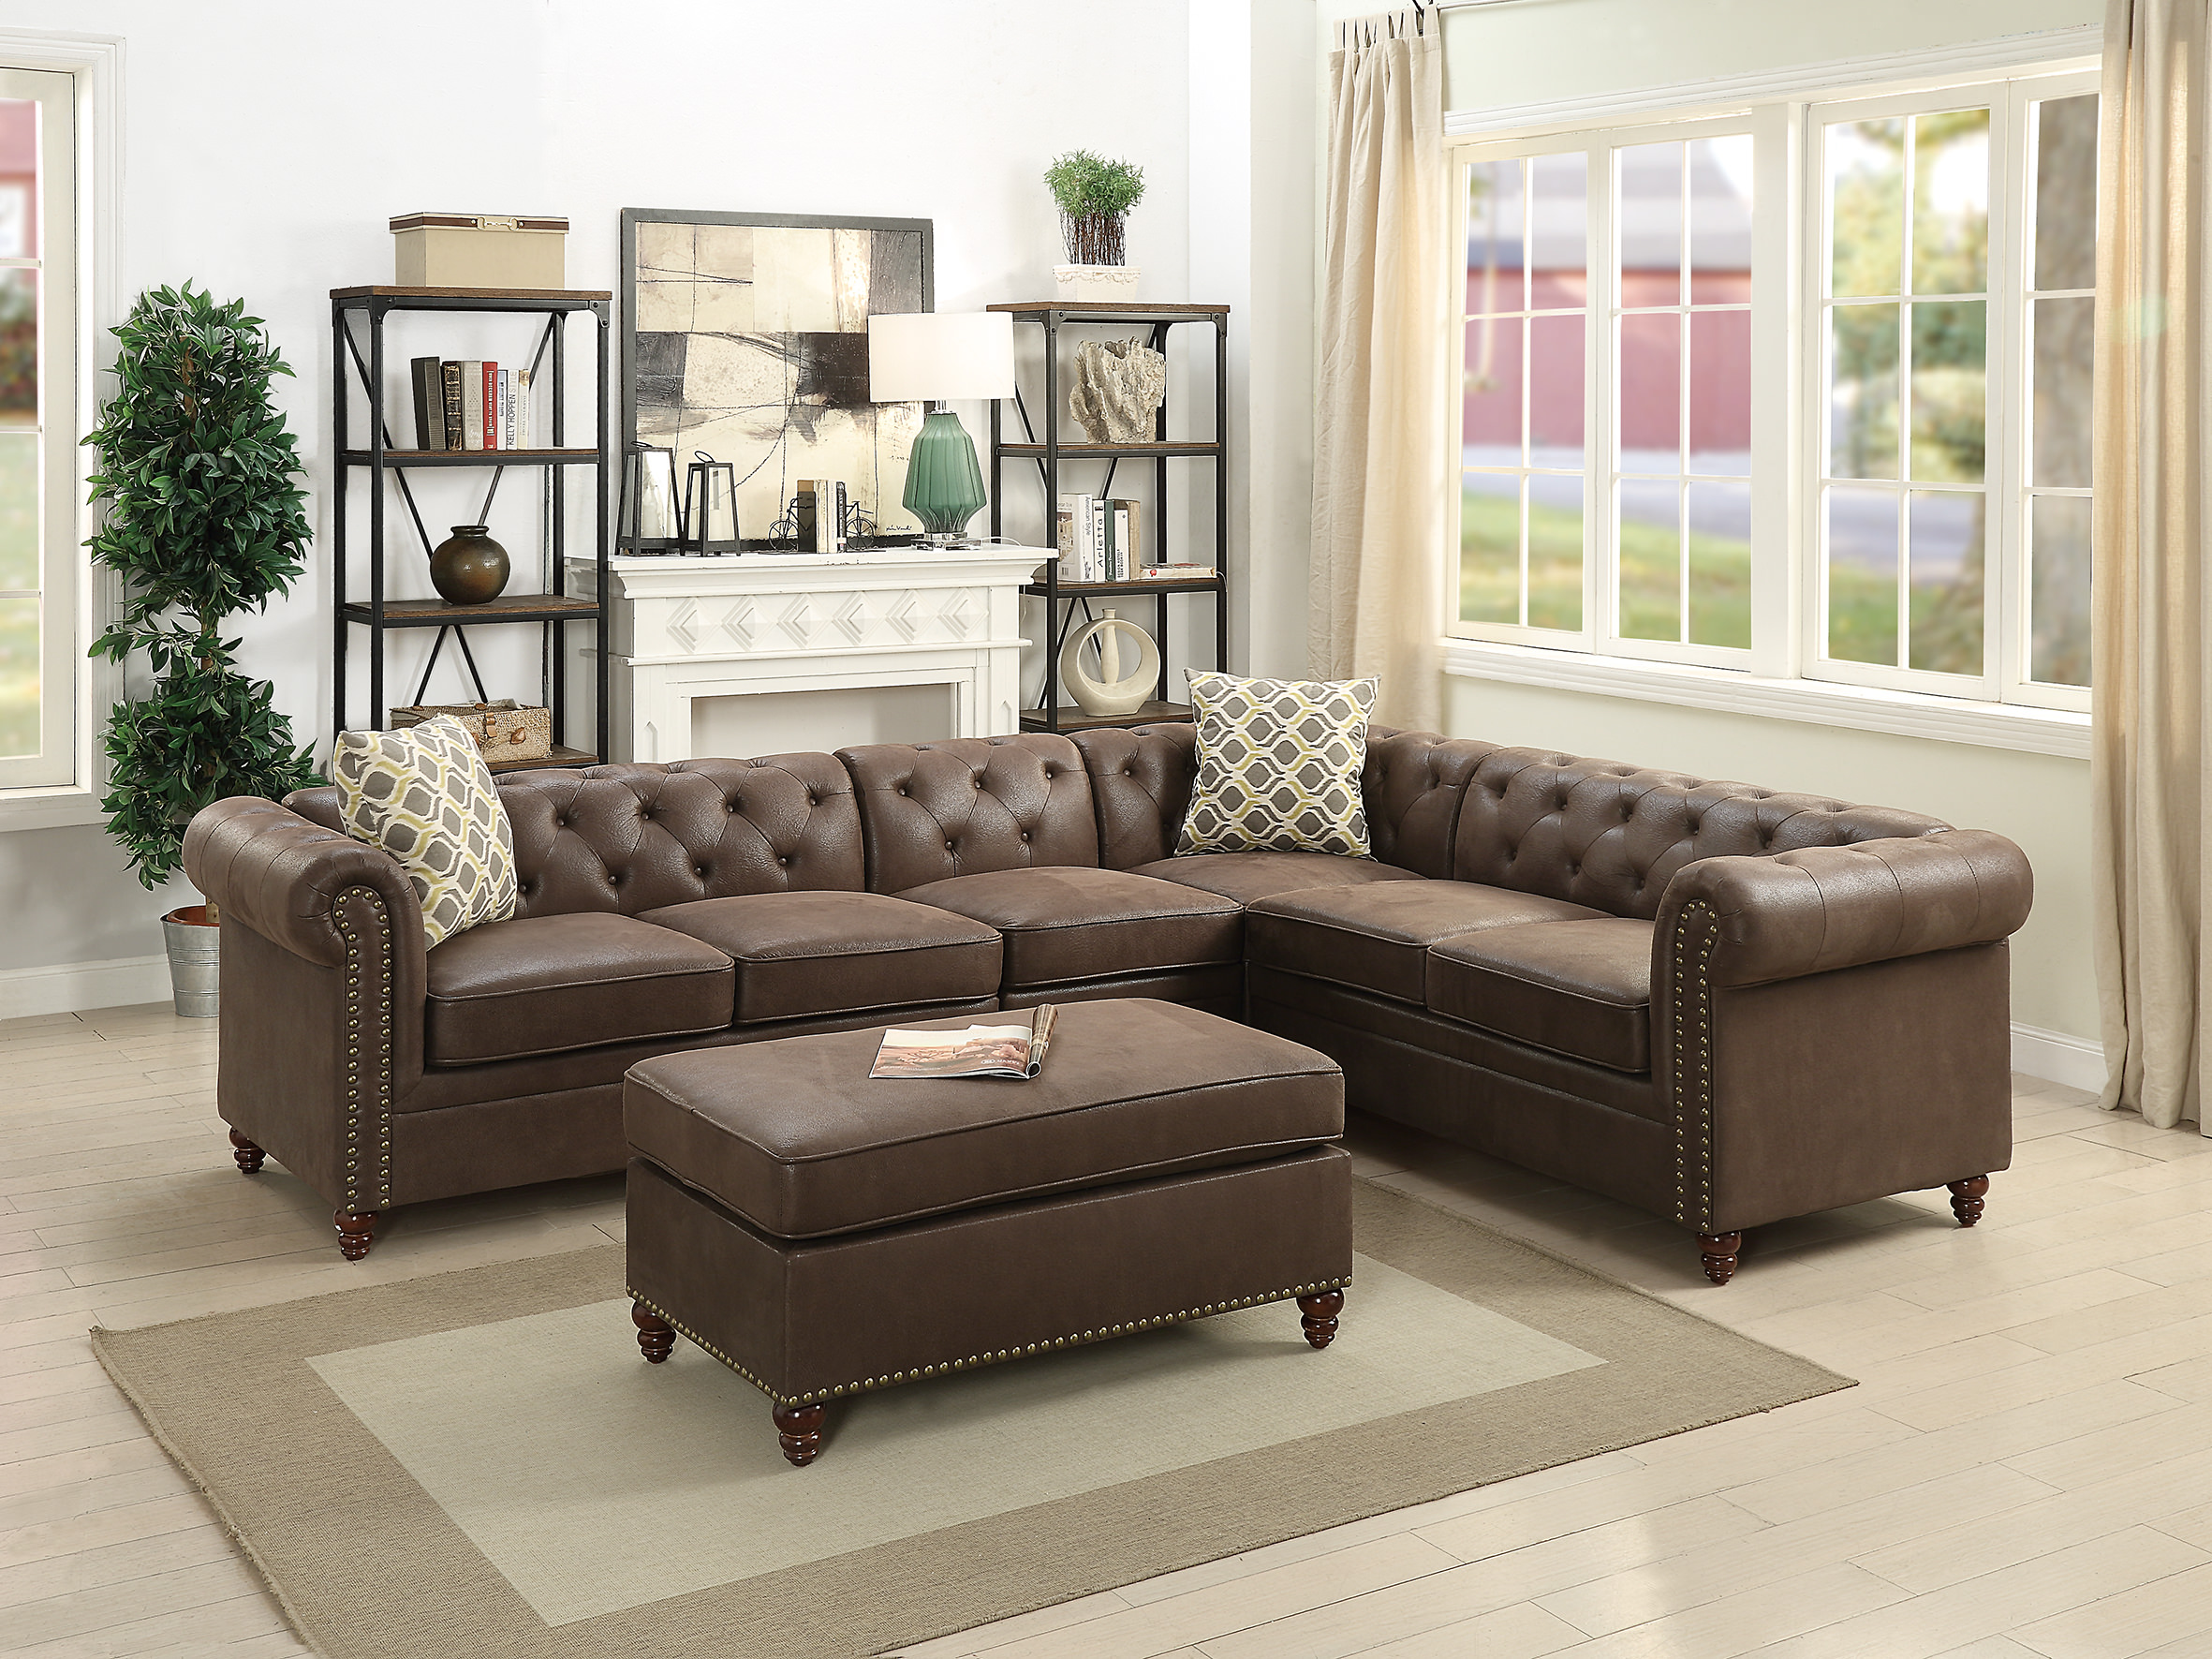 home full reclining gray sams room costco furniture your ideas for chaise sectional club sectionals modular with sofa sofas living modern comfy fill cheap couch grain decorating leather